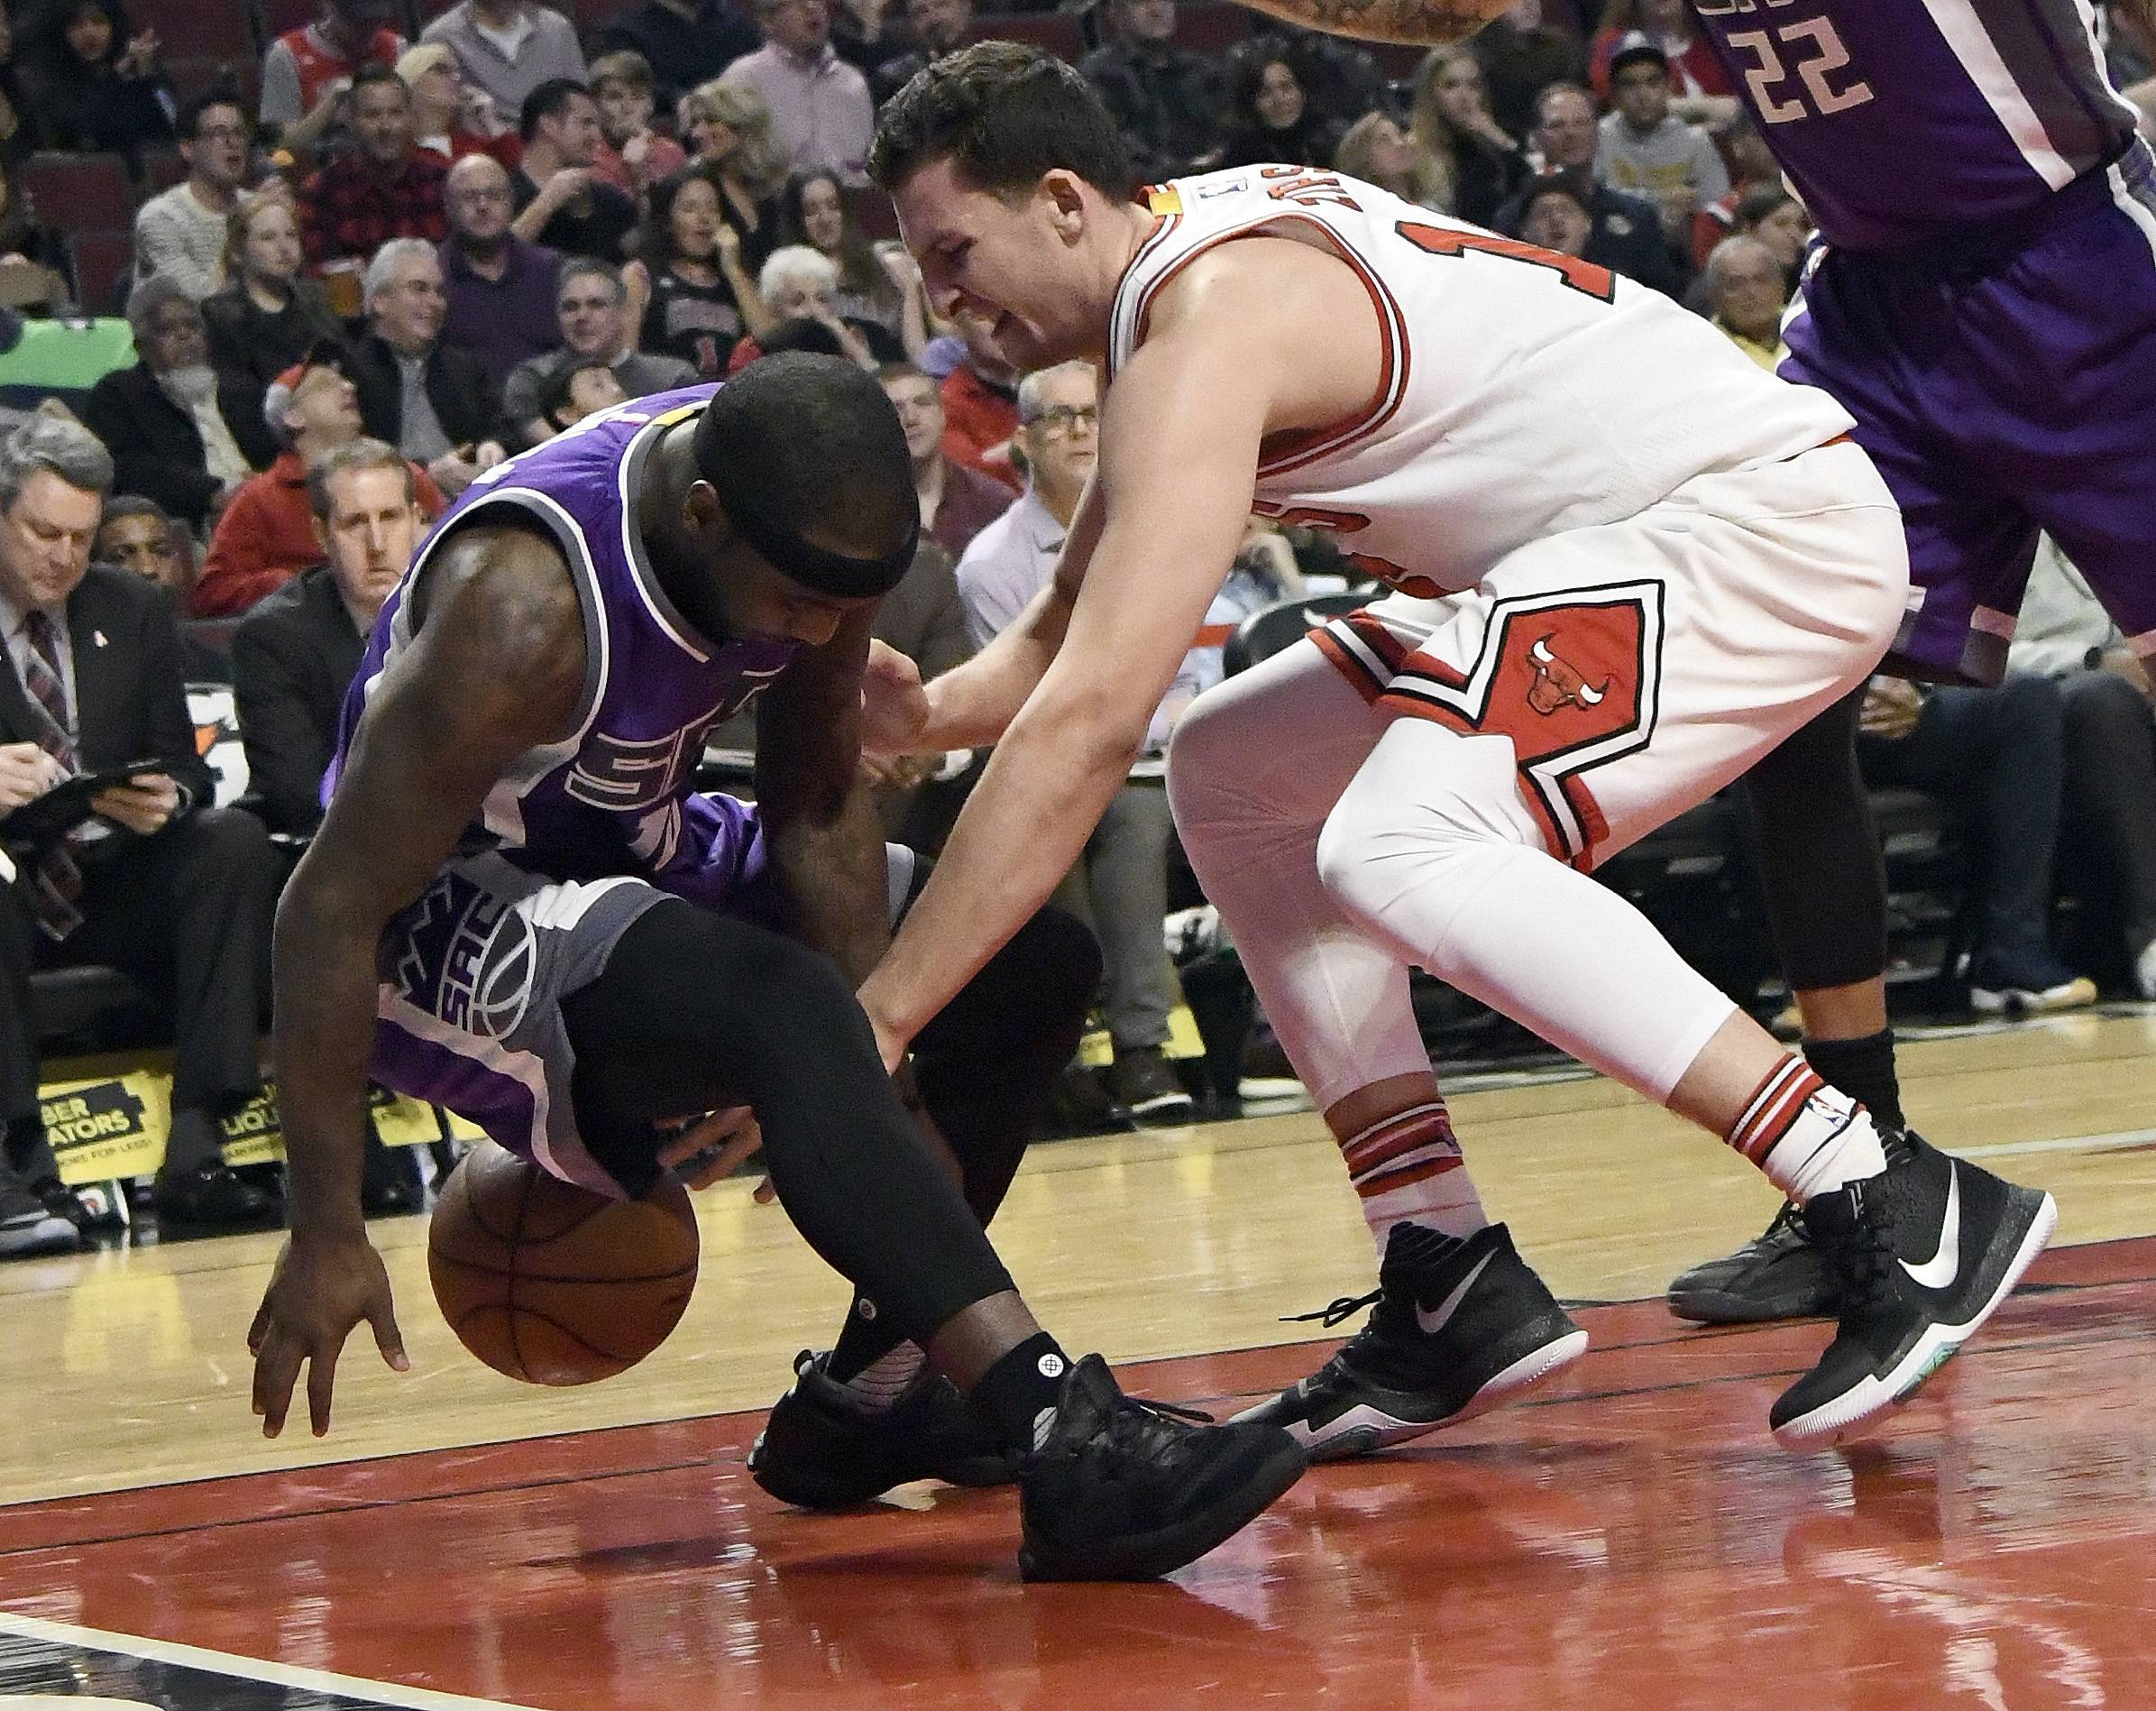 Sacramento Kings guard Ty Lawson, left, and Chicago Bulls forward Paul Zipser (16) go for a loose ball during the first half of an NBA basketball game in Chicago, Saturday, Jan. 21, 2017. (AP Photo/David Banks)